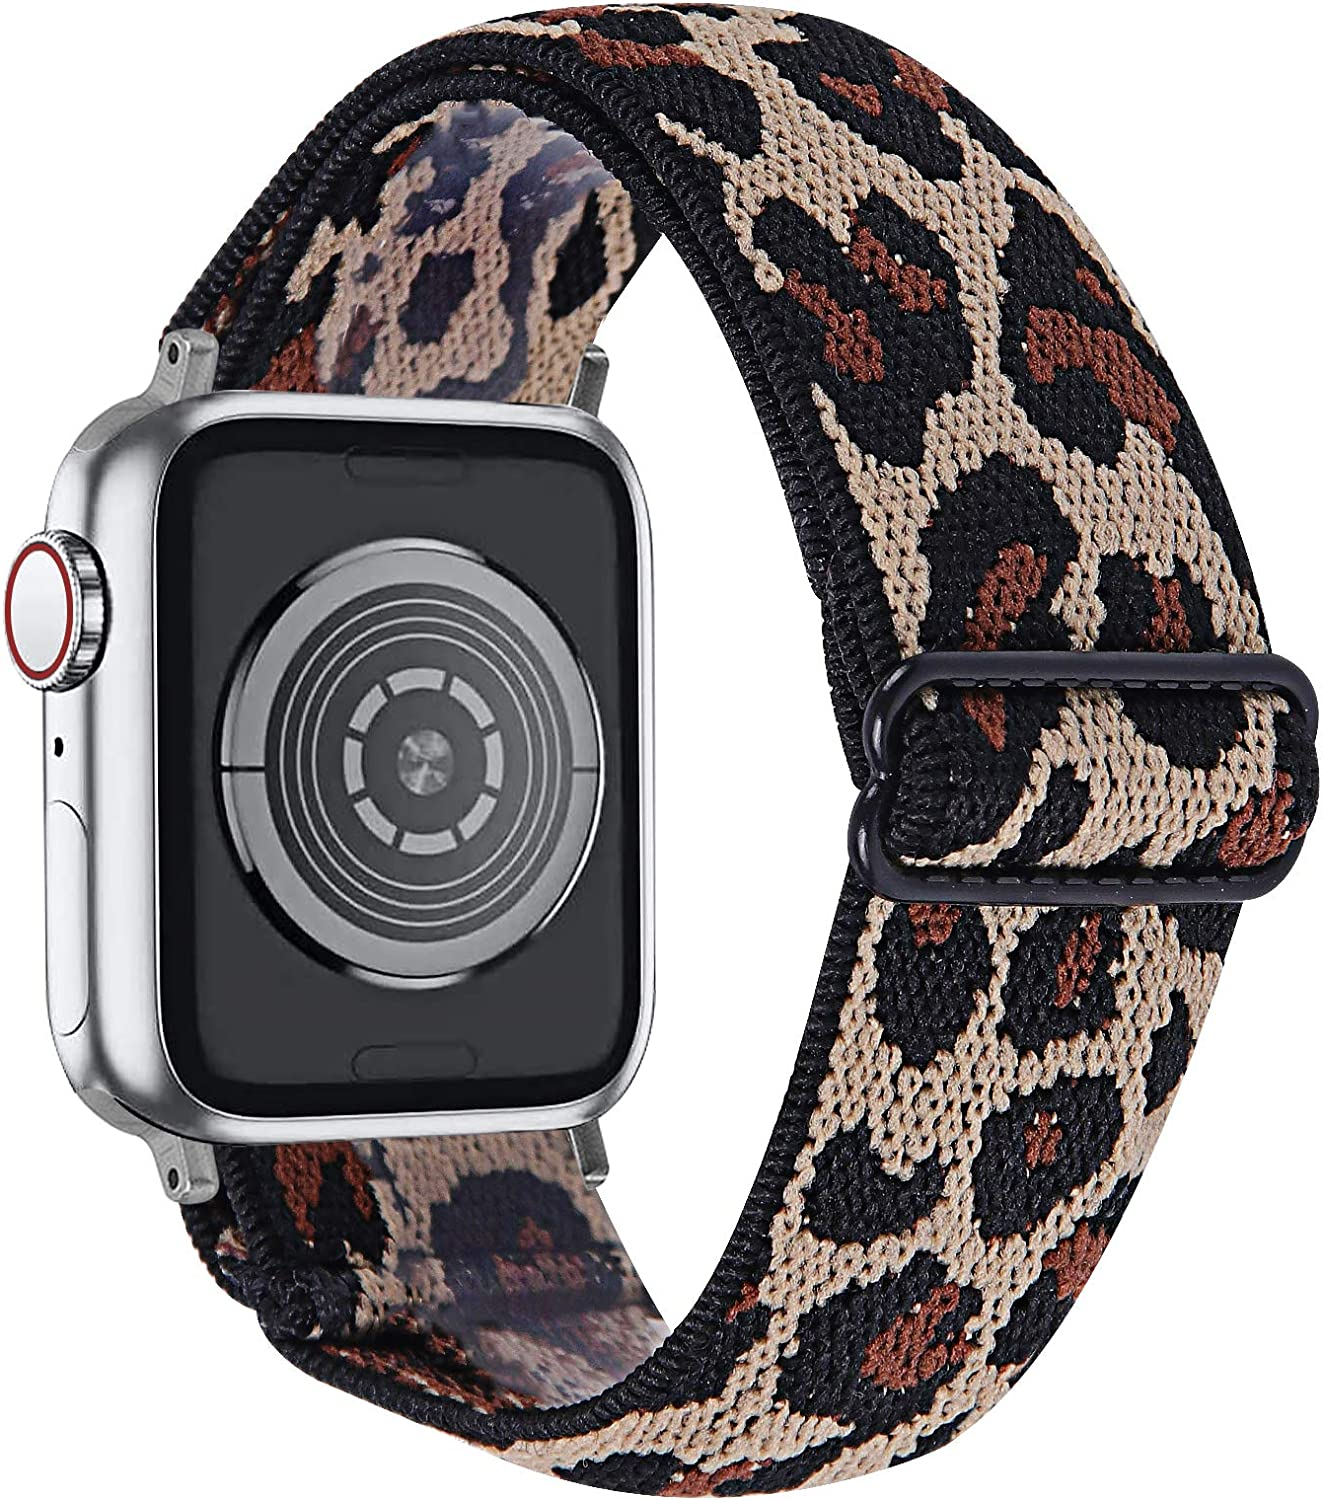 MEFEO Adjustable Elastic Bands Compatible with Apple Watch Bands 38mm 40mm 42mm 44mm, Soft Stretch Bracelet Replacement for iWatch Series 6/5/4/3/2/1 & SE Women Girls (Leopard, 38mm/40mm)